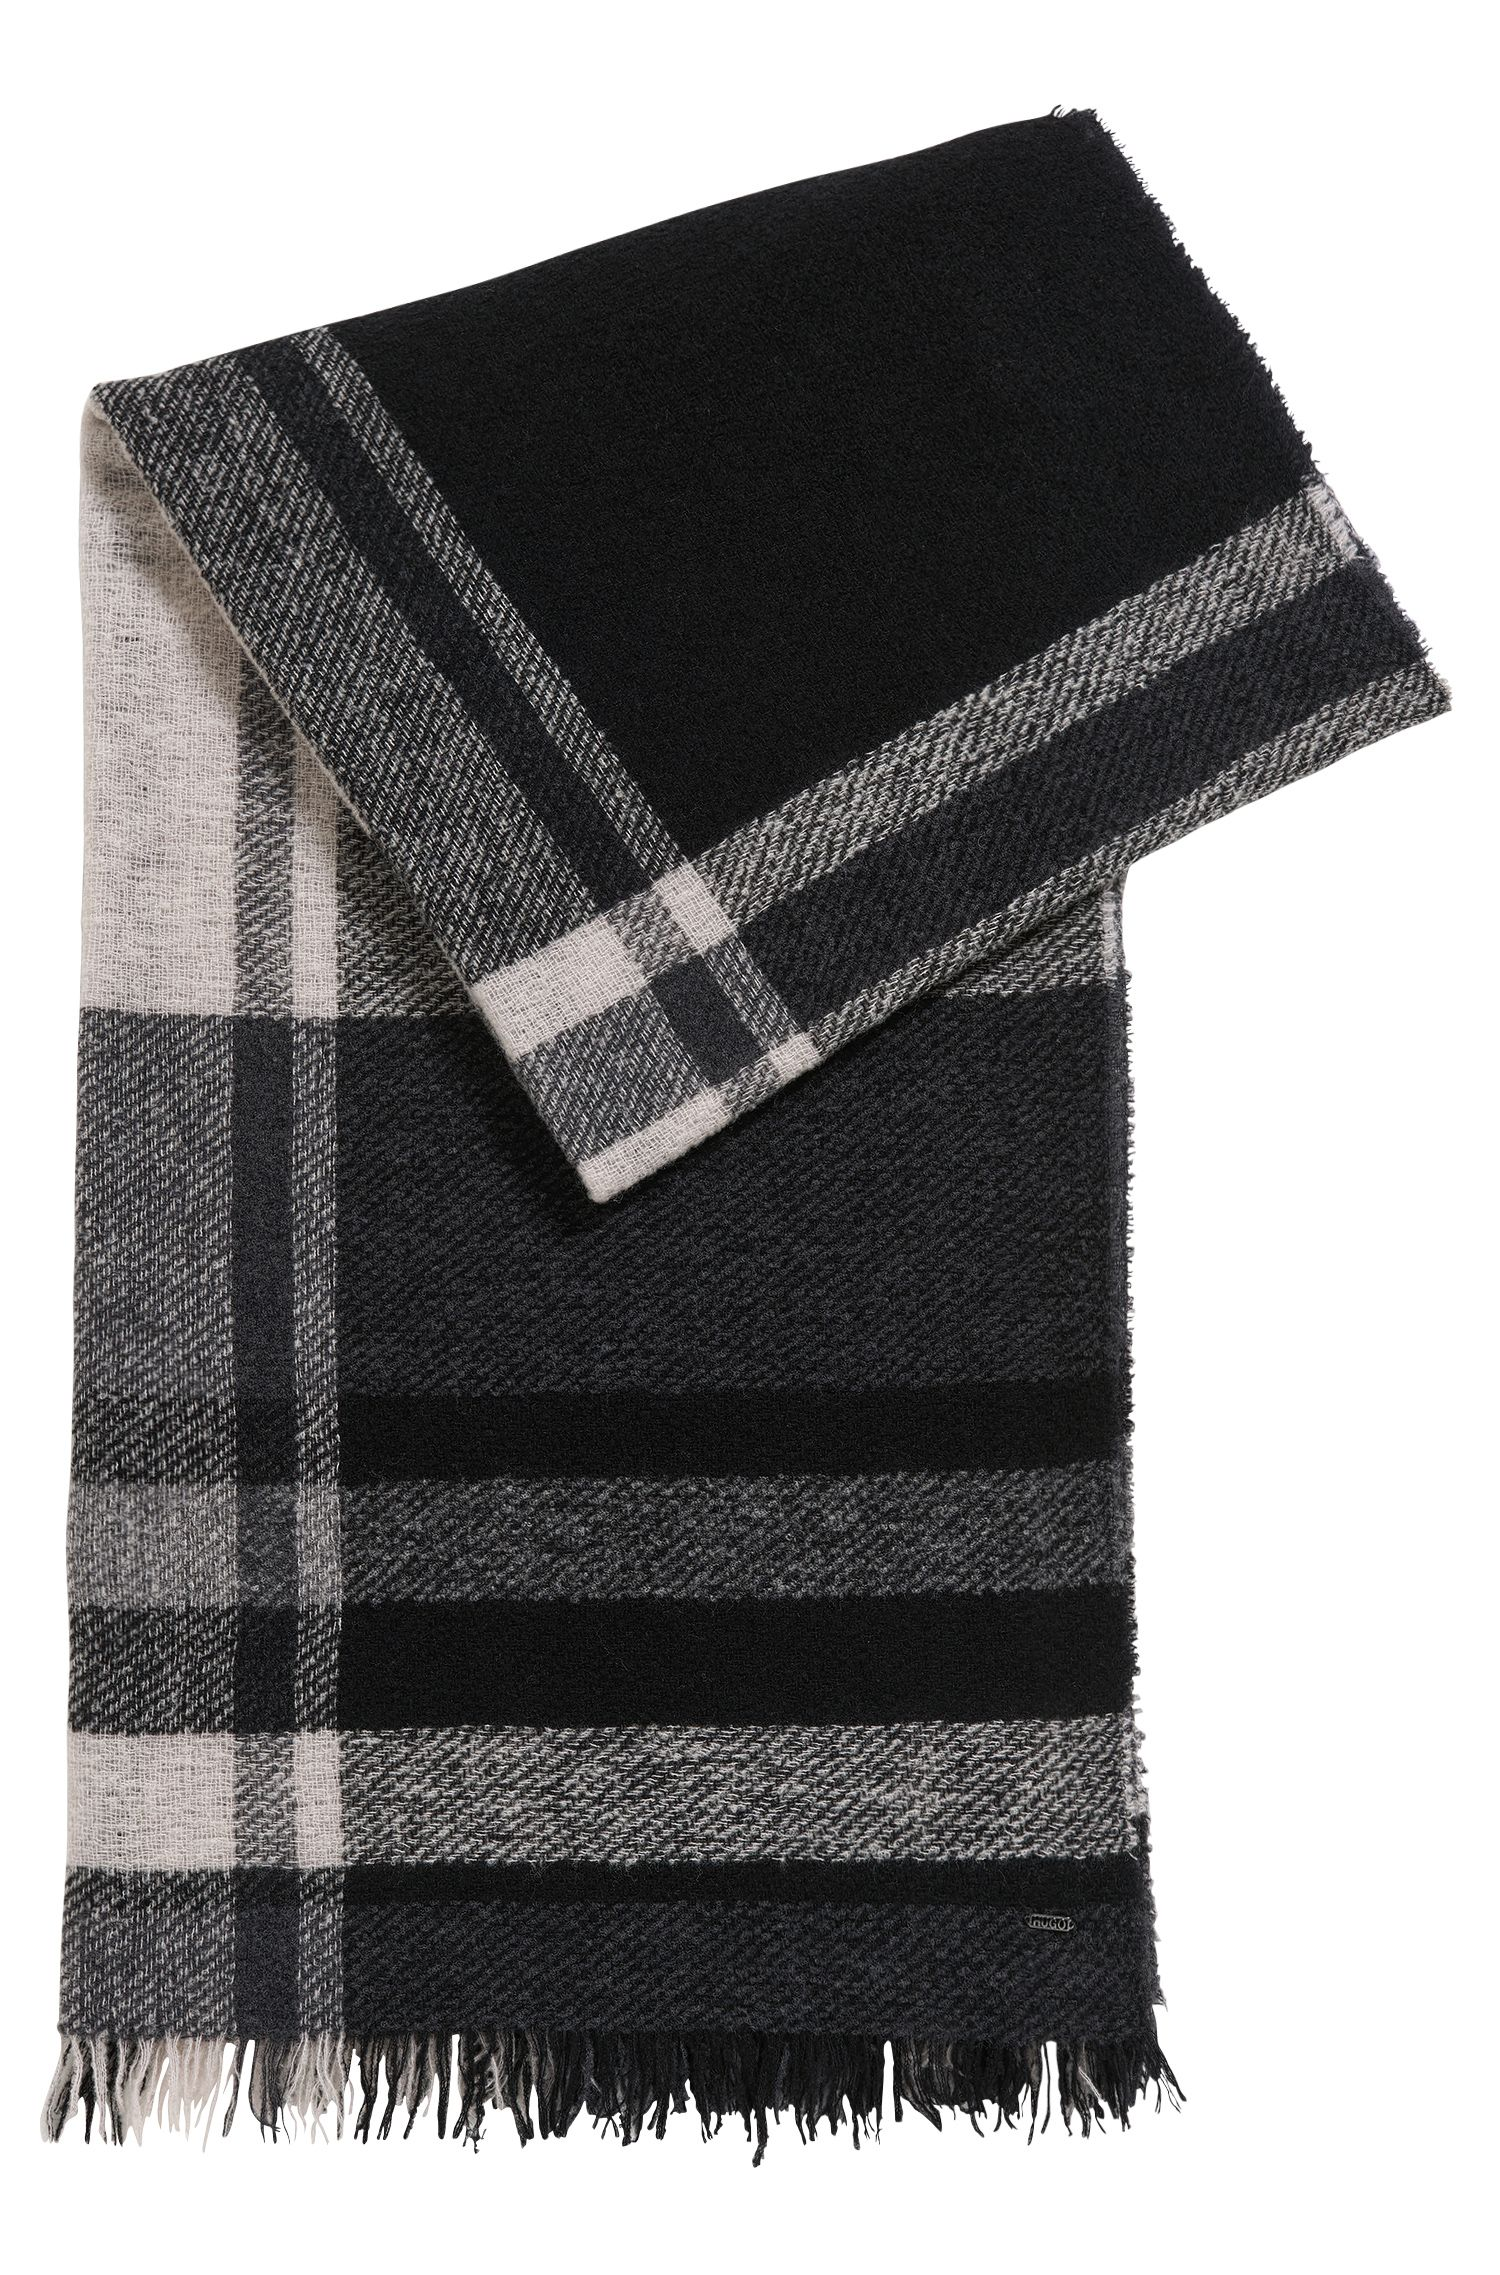 Bouclé virgin wool blend checked scarf